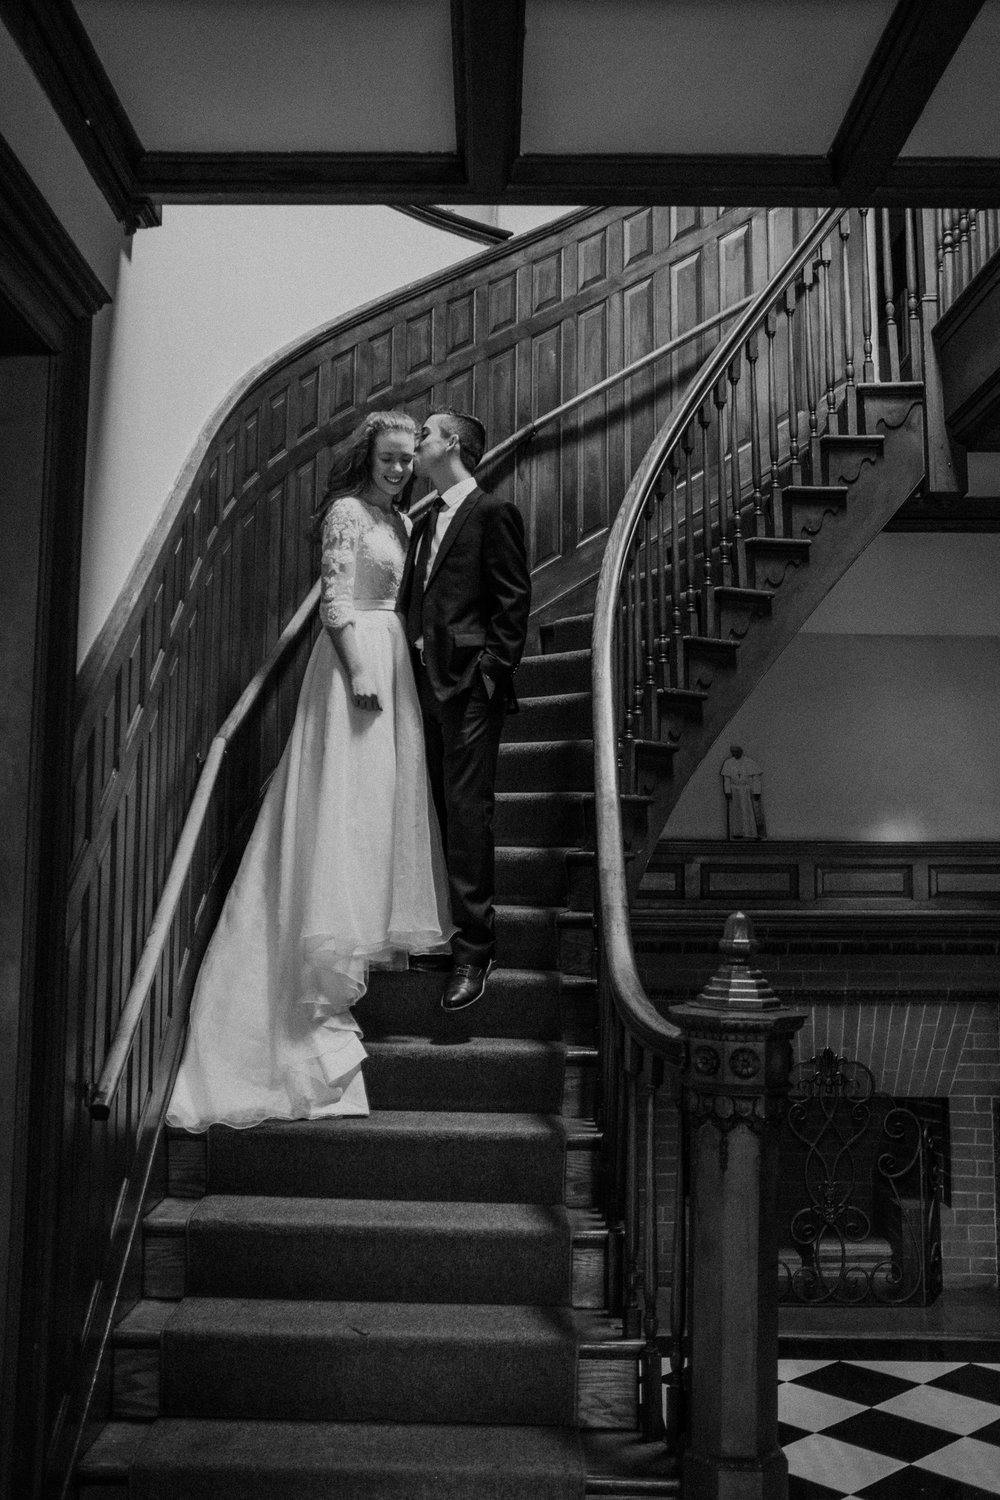 classic bride and groom wedding portrait on staircase